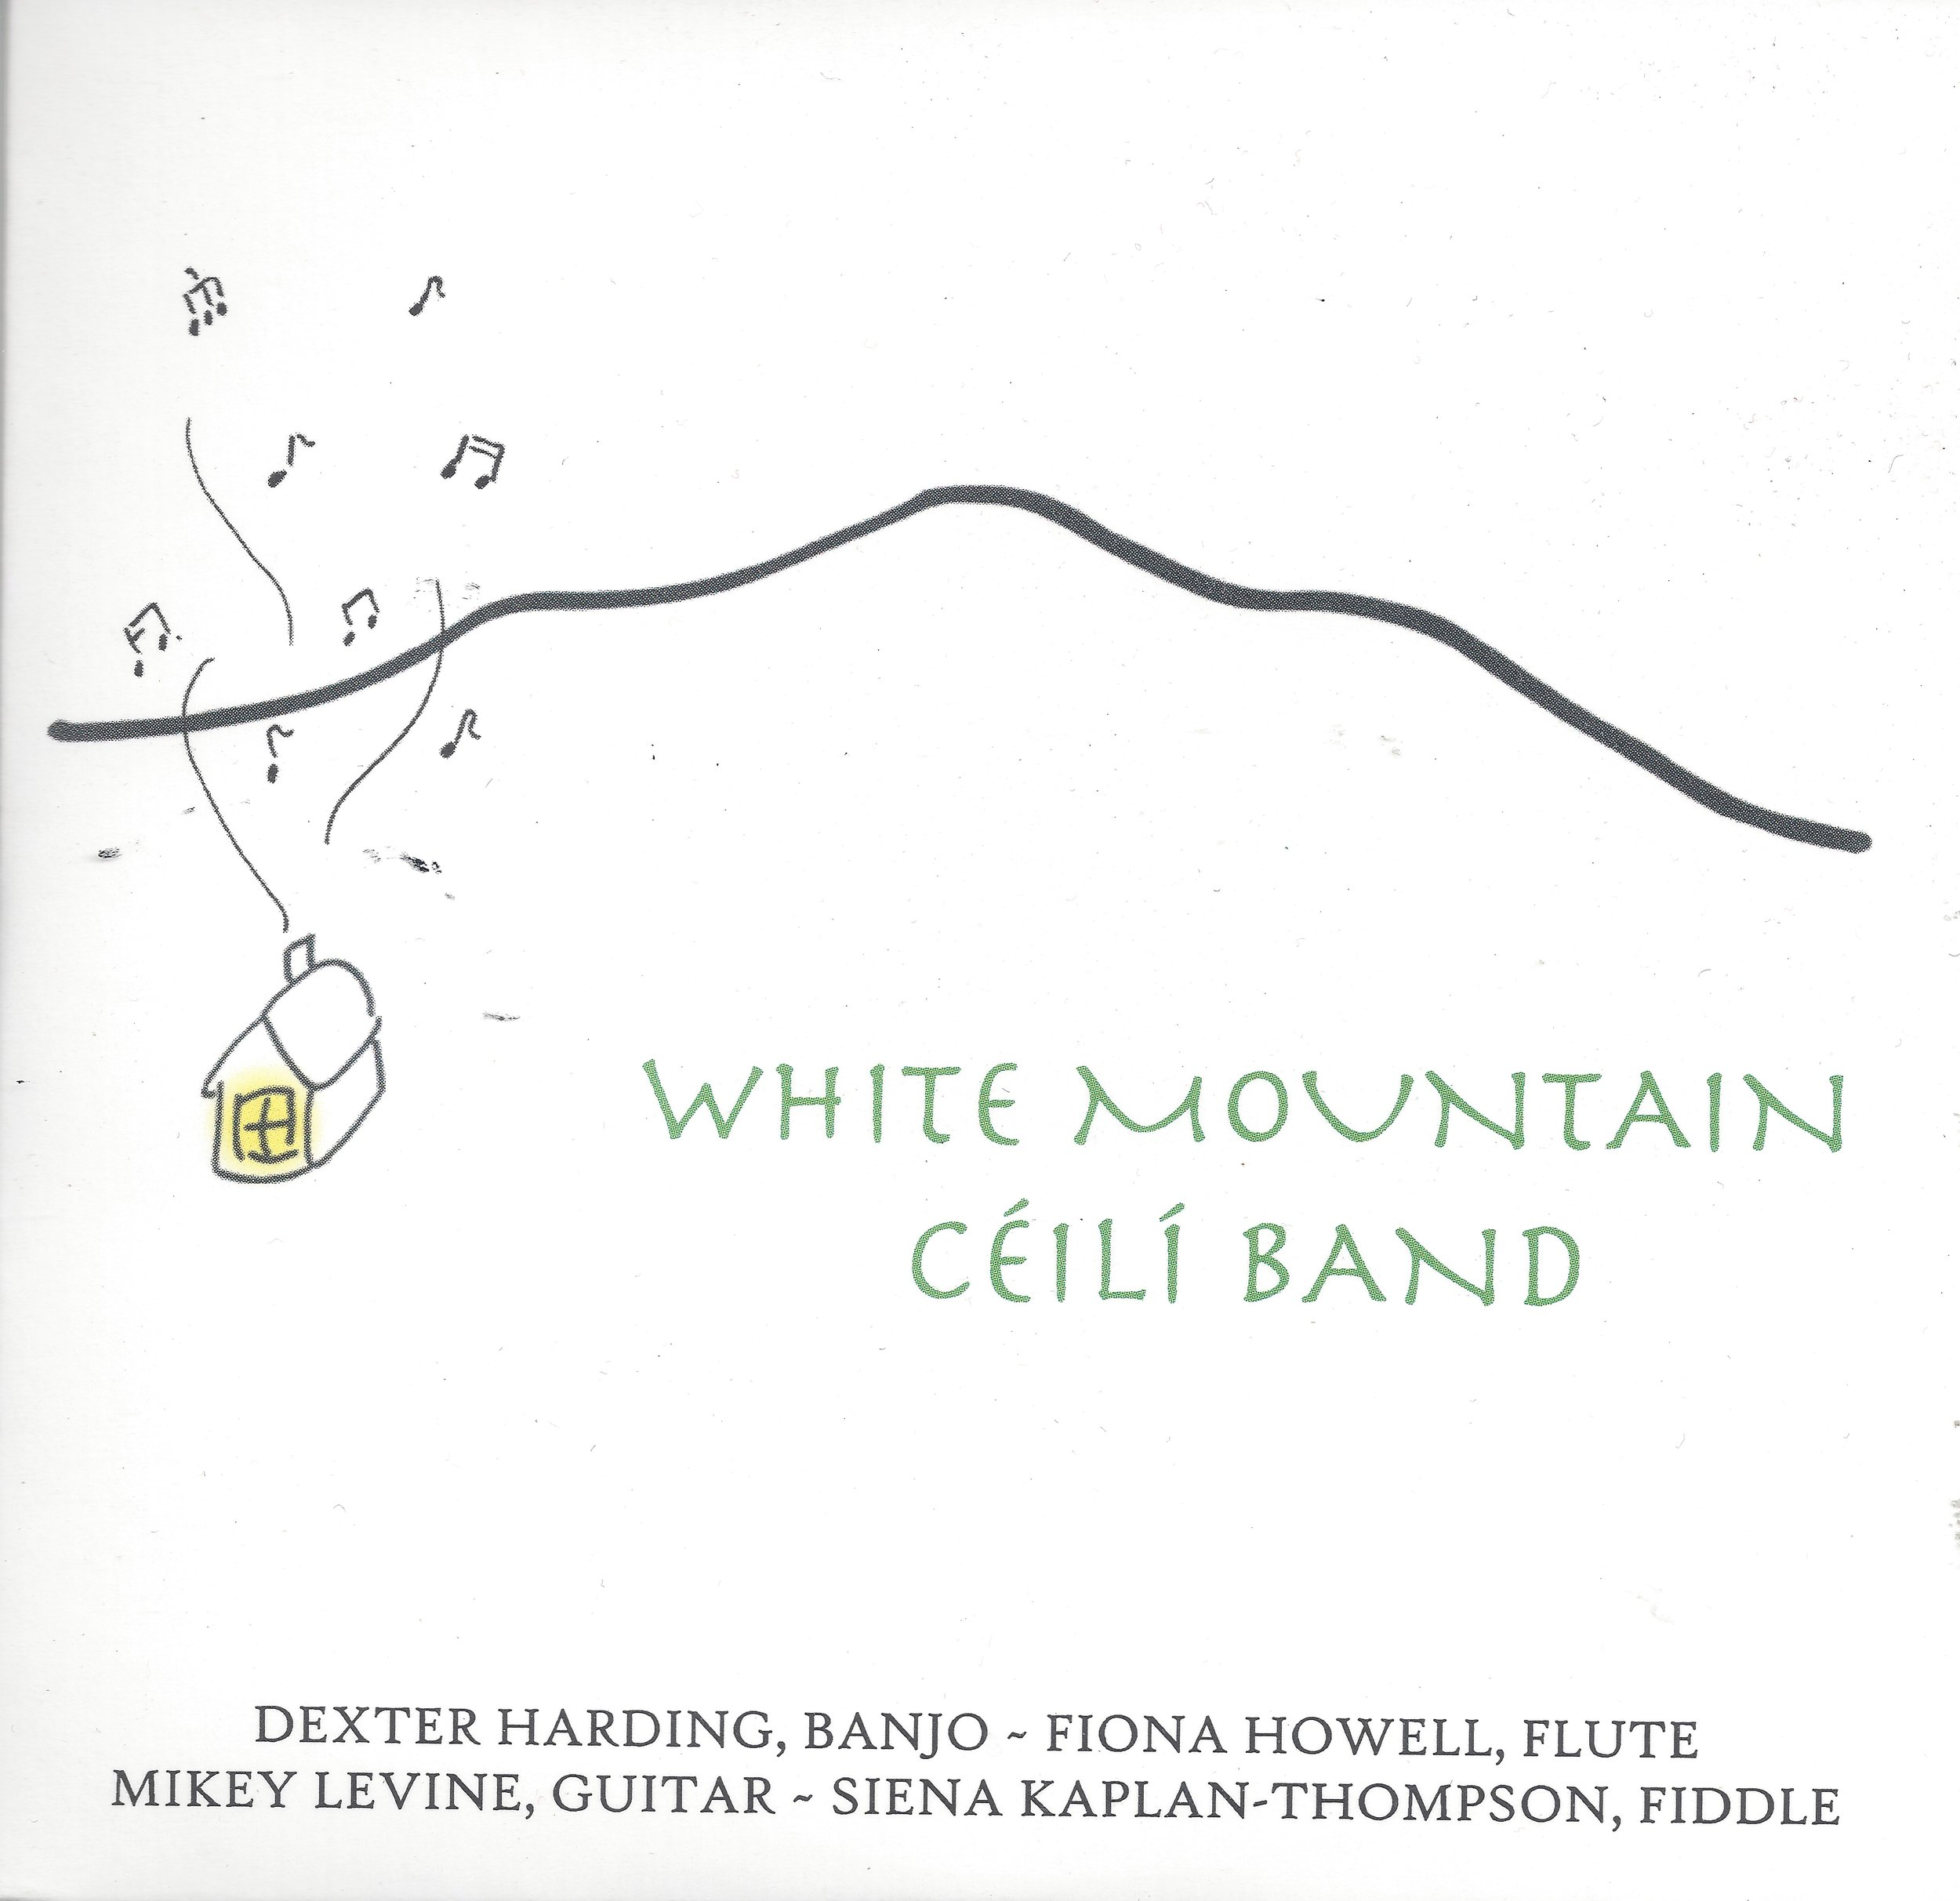 The White Mountain Céilí Band